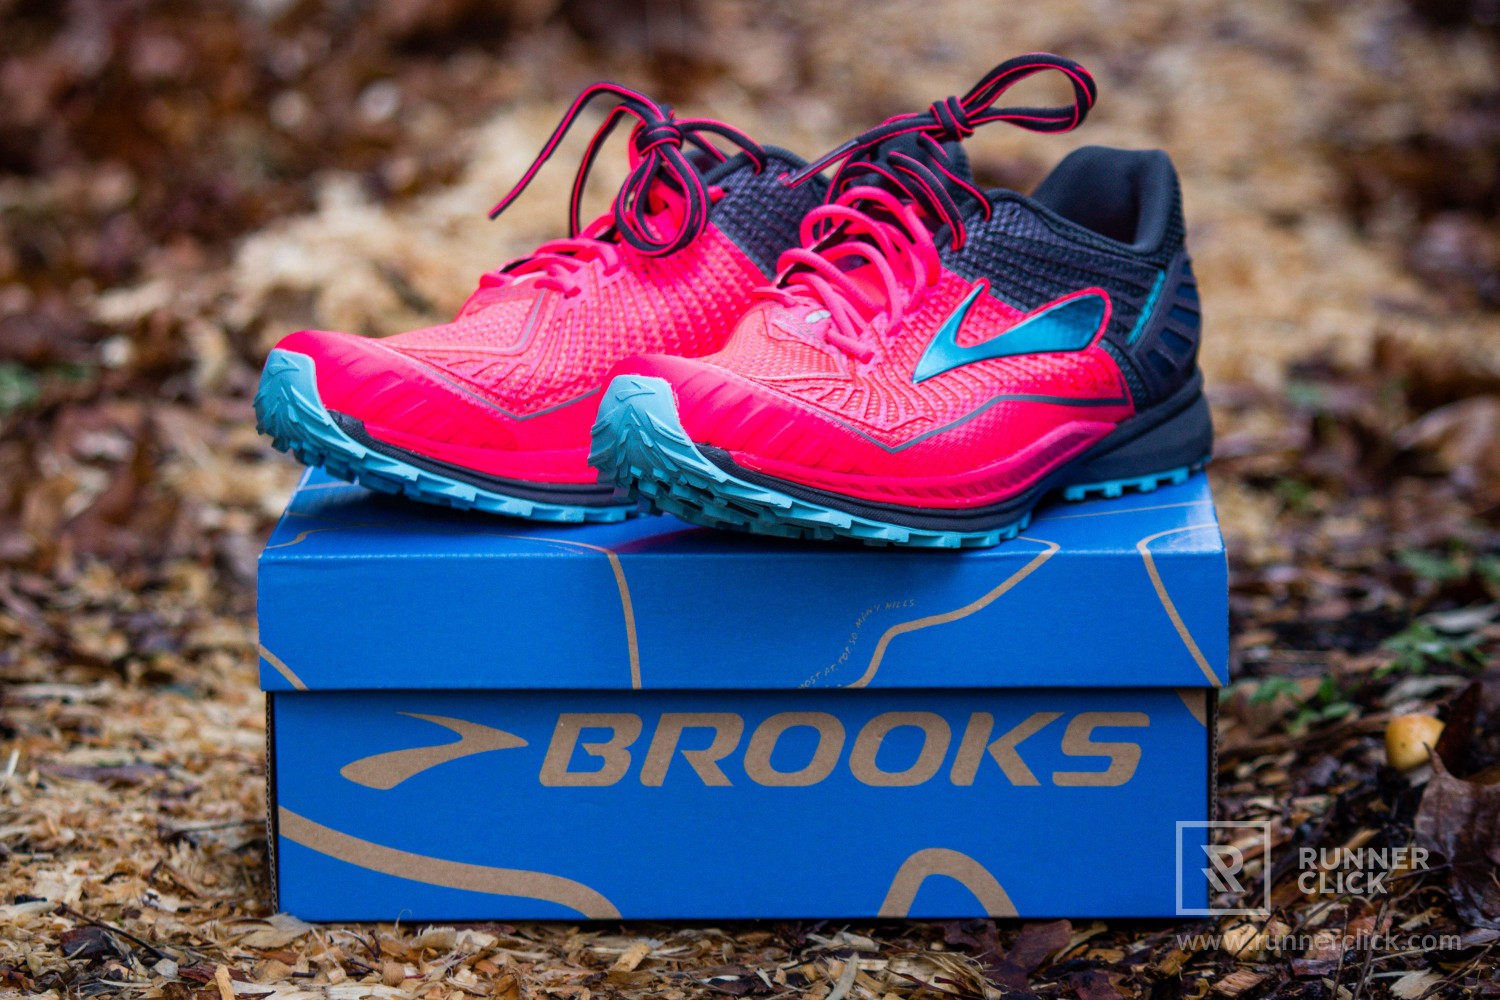 aaecd060a99 Brooks Mazama Reviewed - To Buy or Not in May 2019